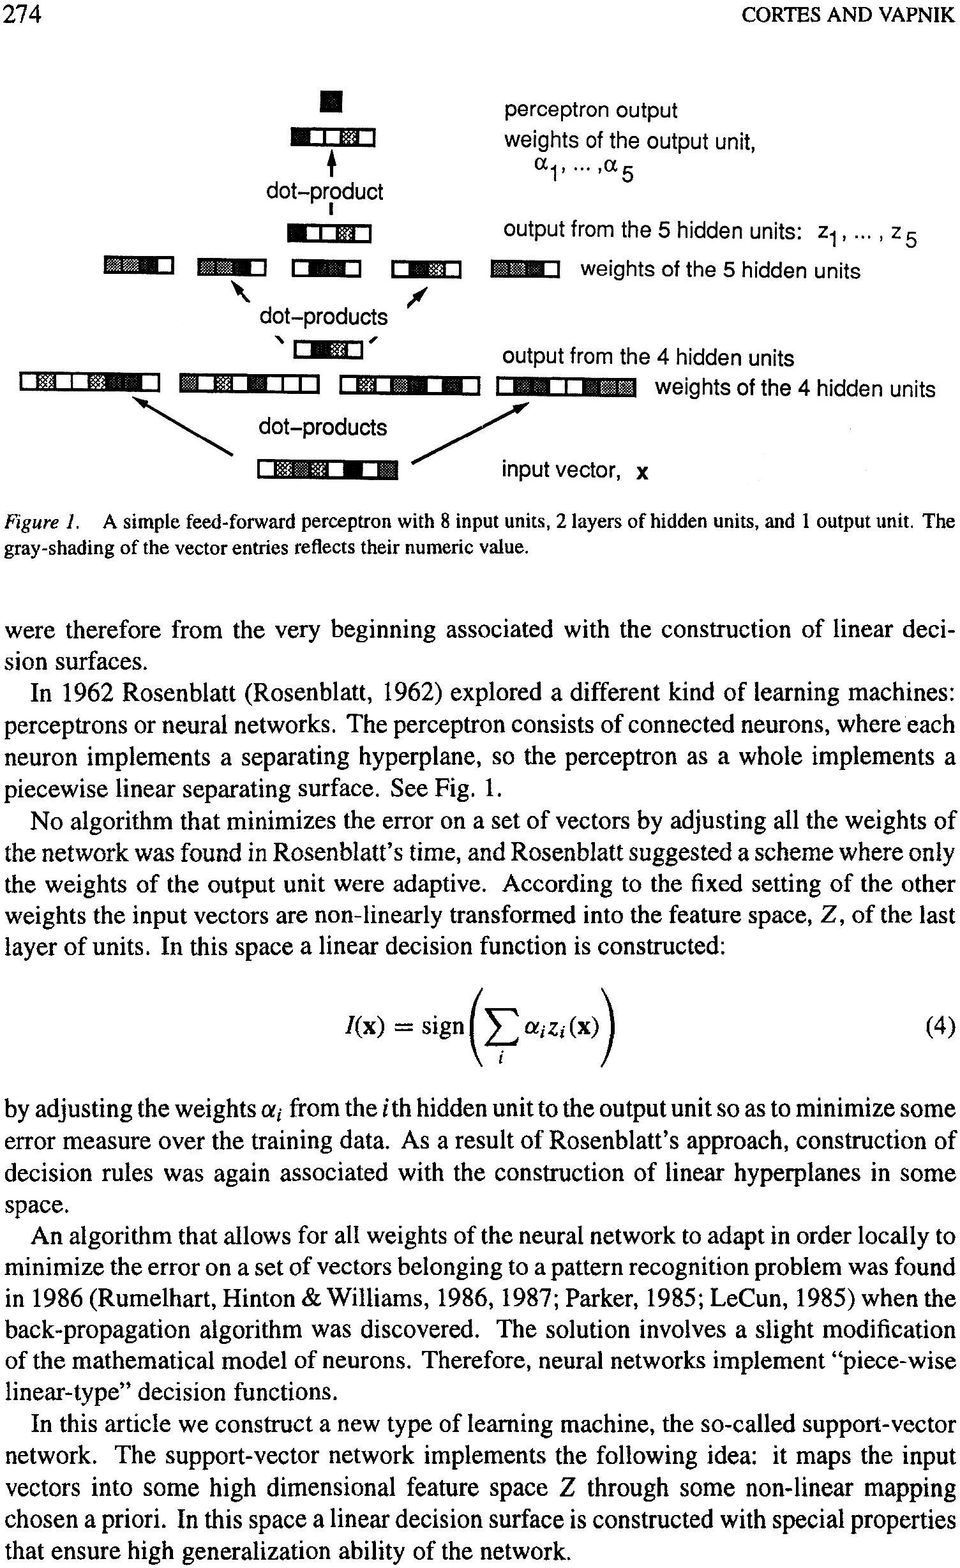 In 1962 Rosenblatt (Rosenblatt, 1962) explored a different kind of learning machines: perceptrons or neural networks.